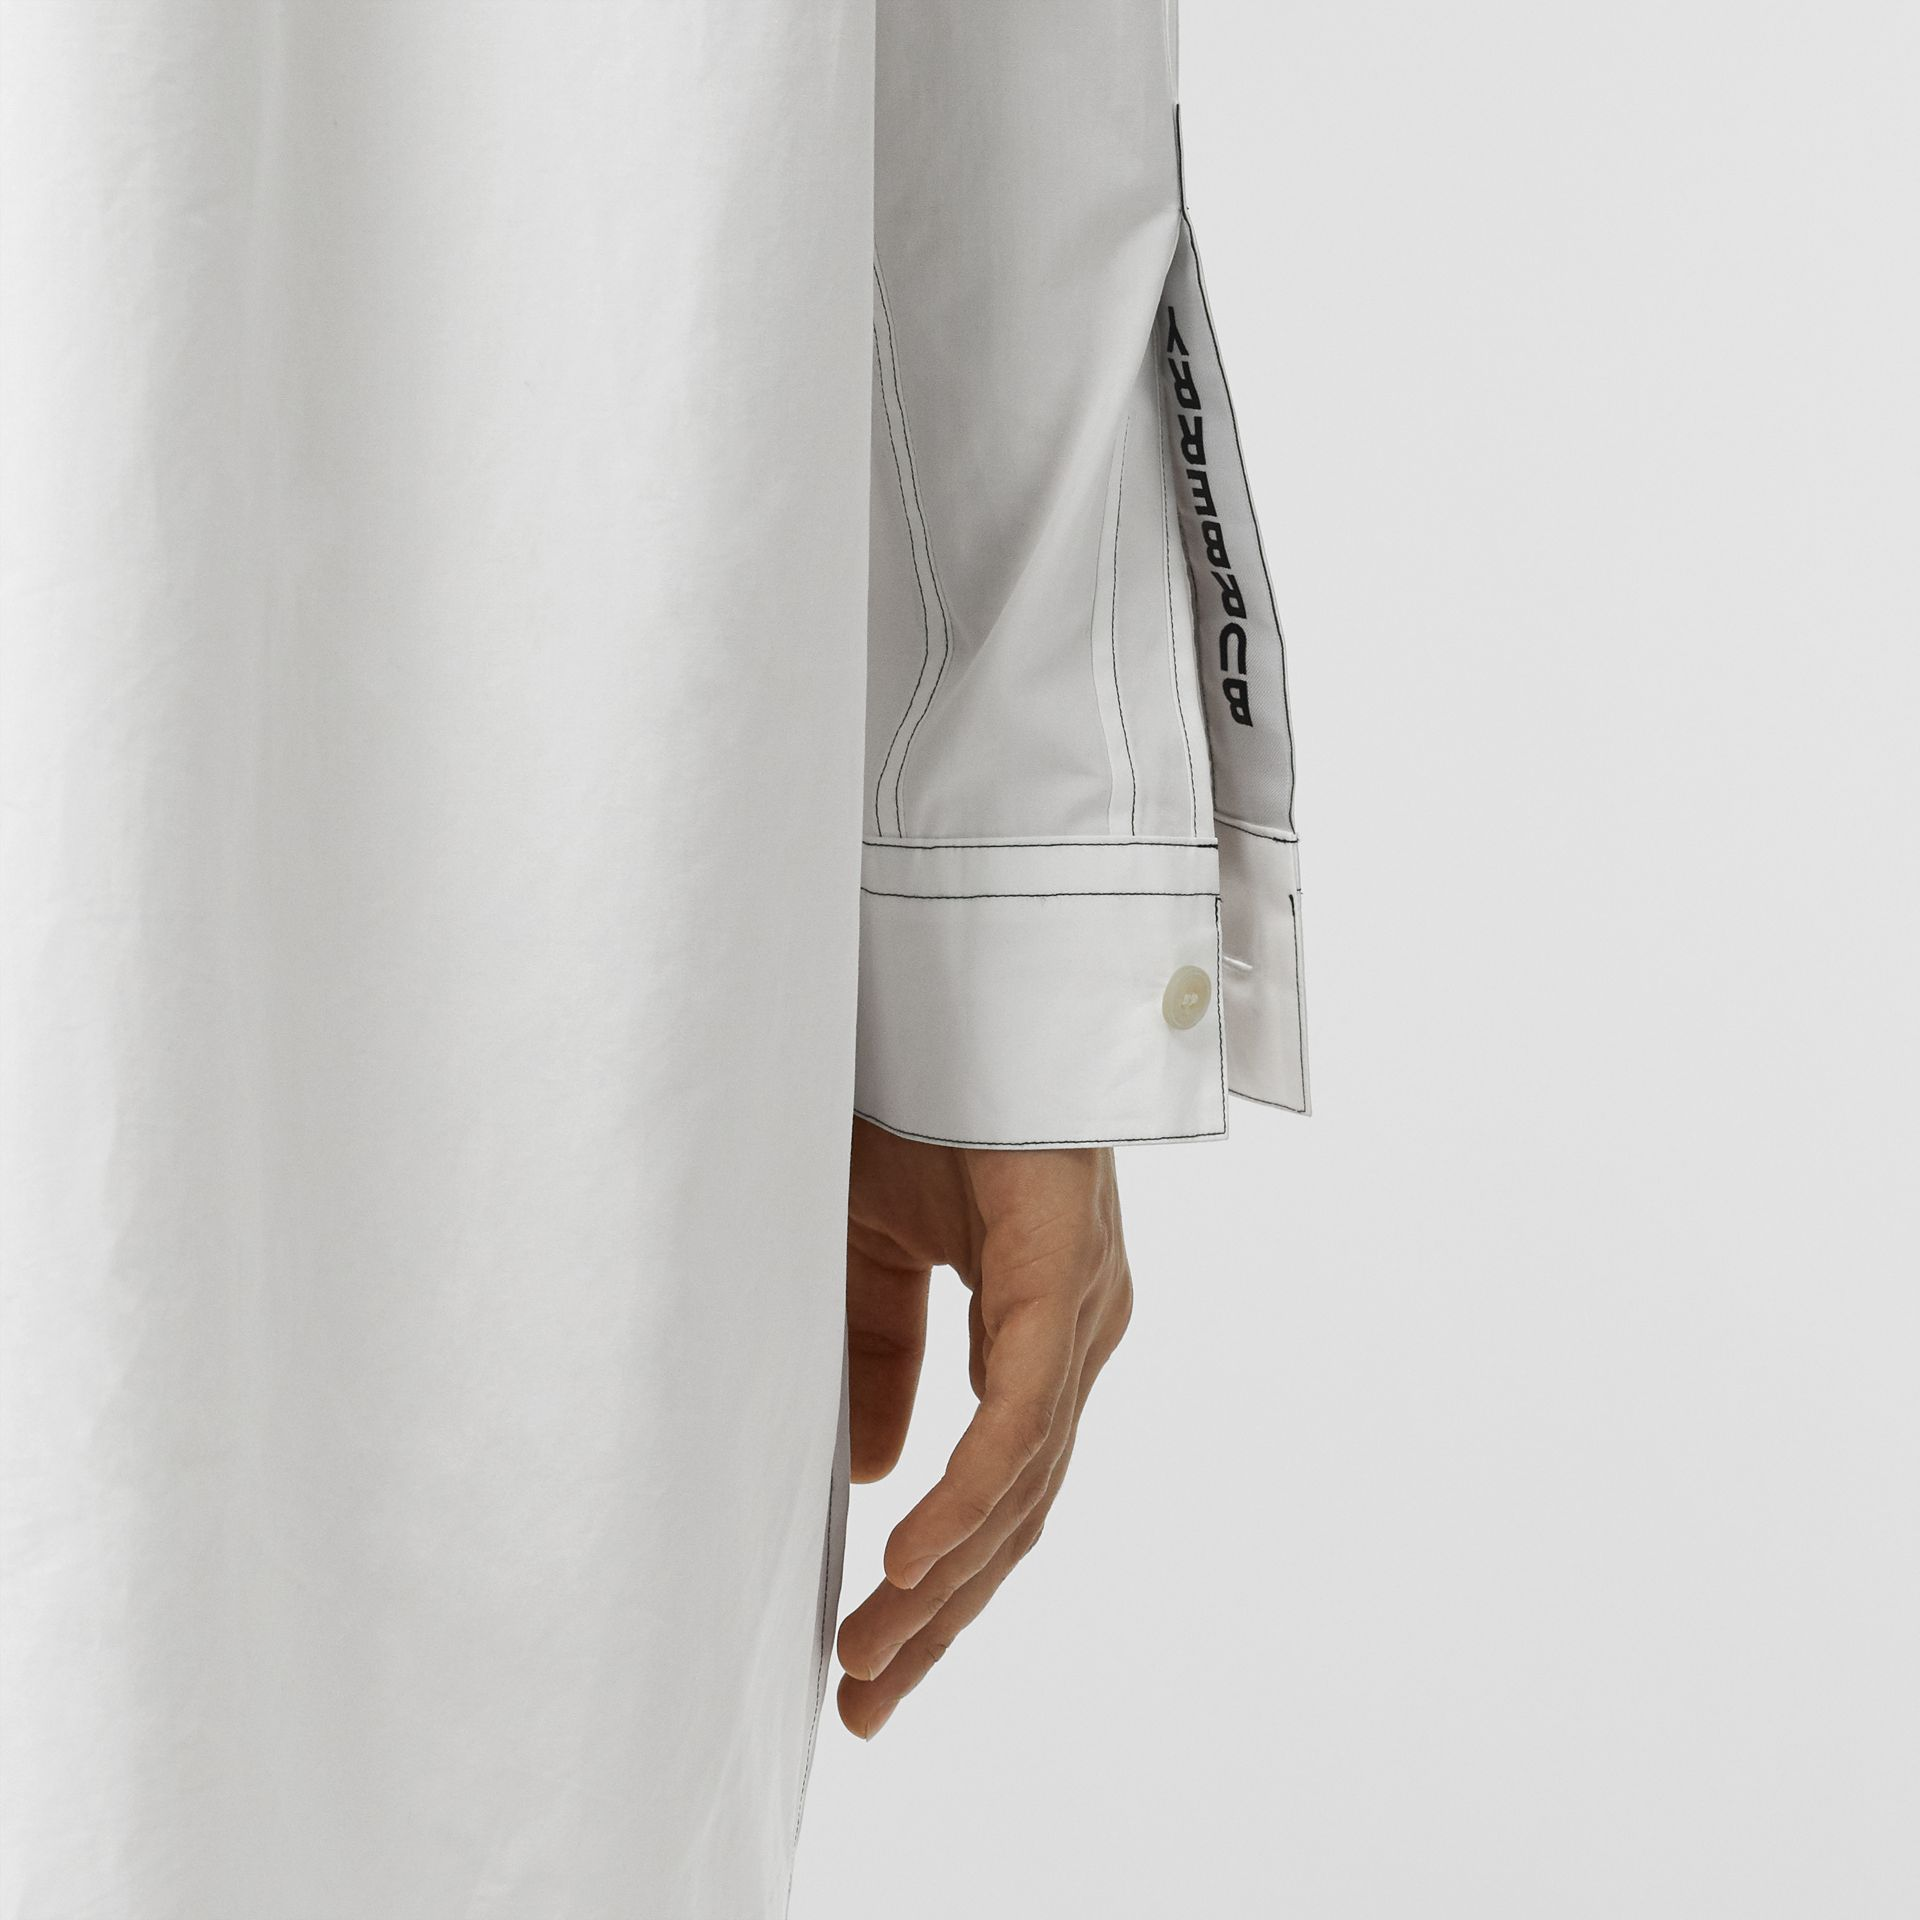 Topstitch Detail Cotton Poplin Shirt Dress in White - Women | Burberry United States - gallery image 5